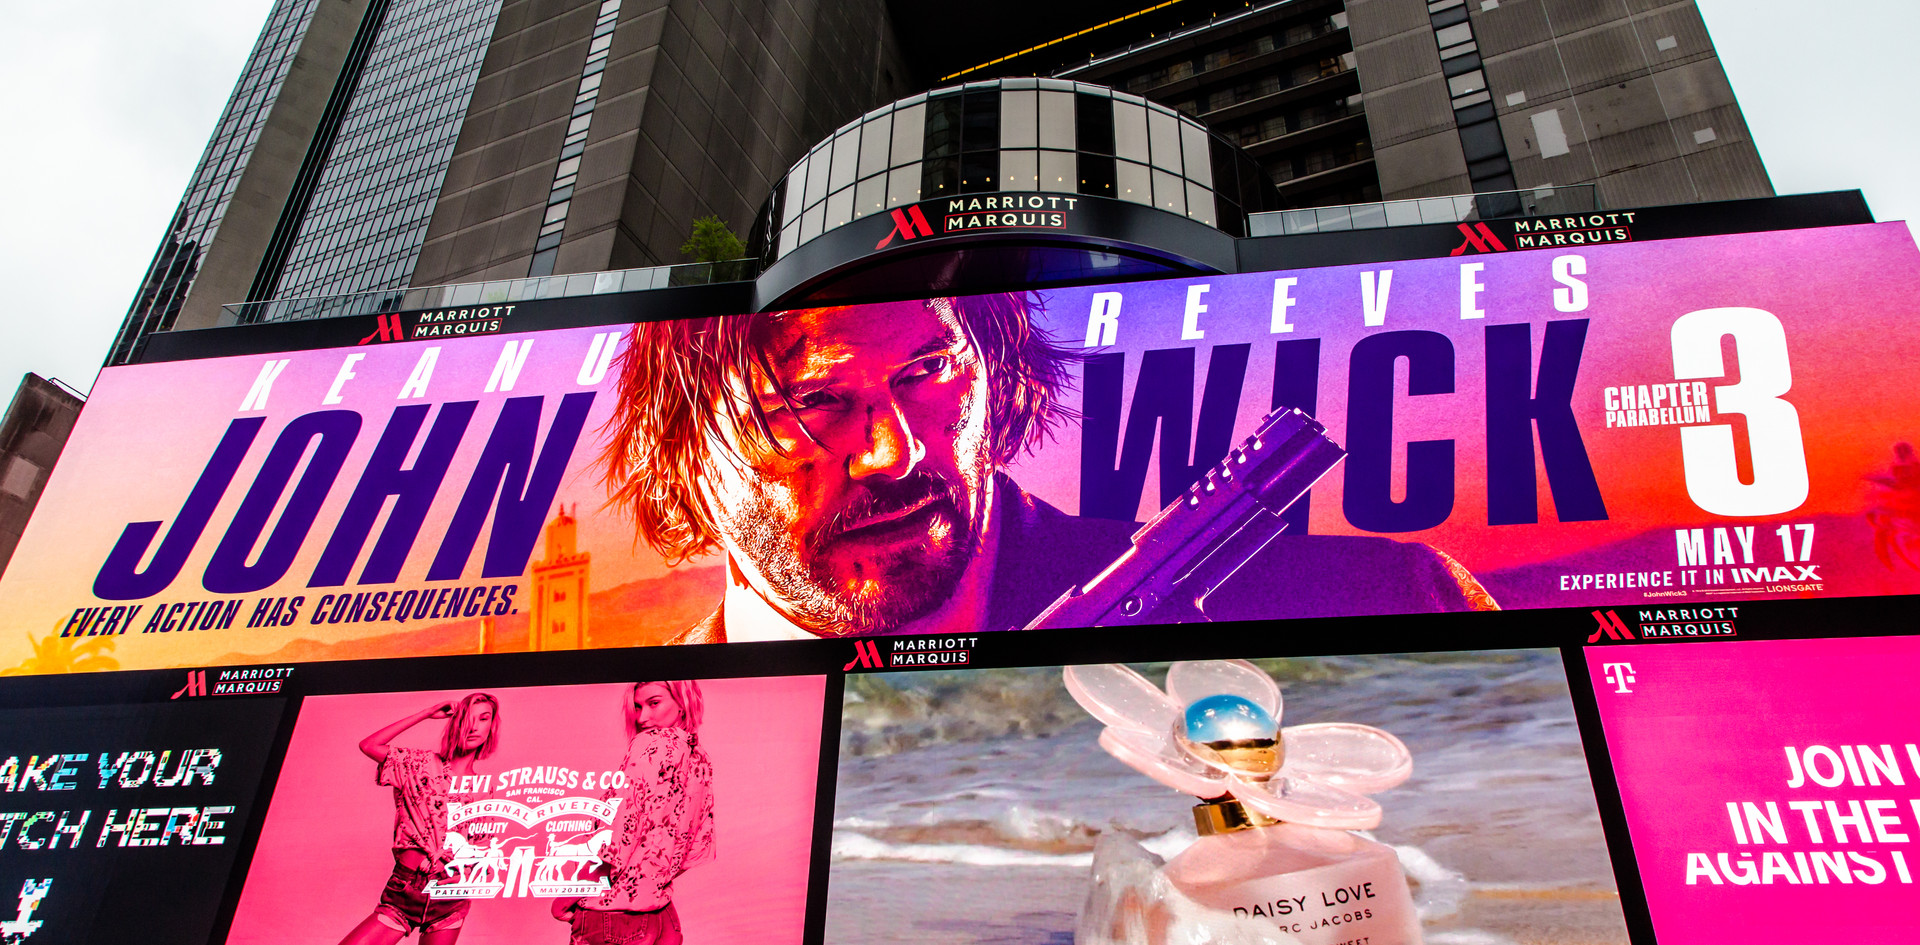 Times Square Marc Jacobs